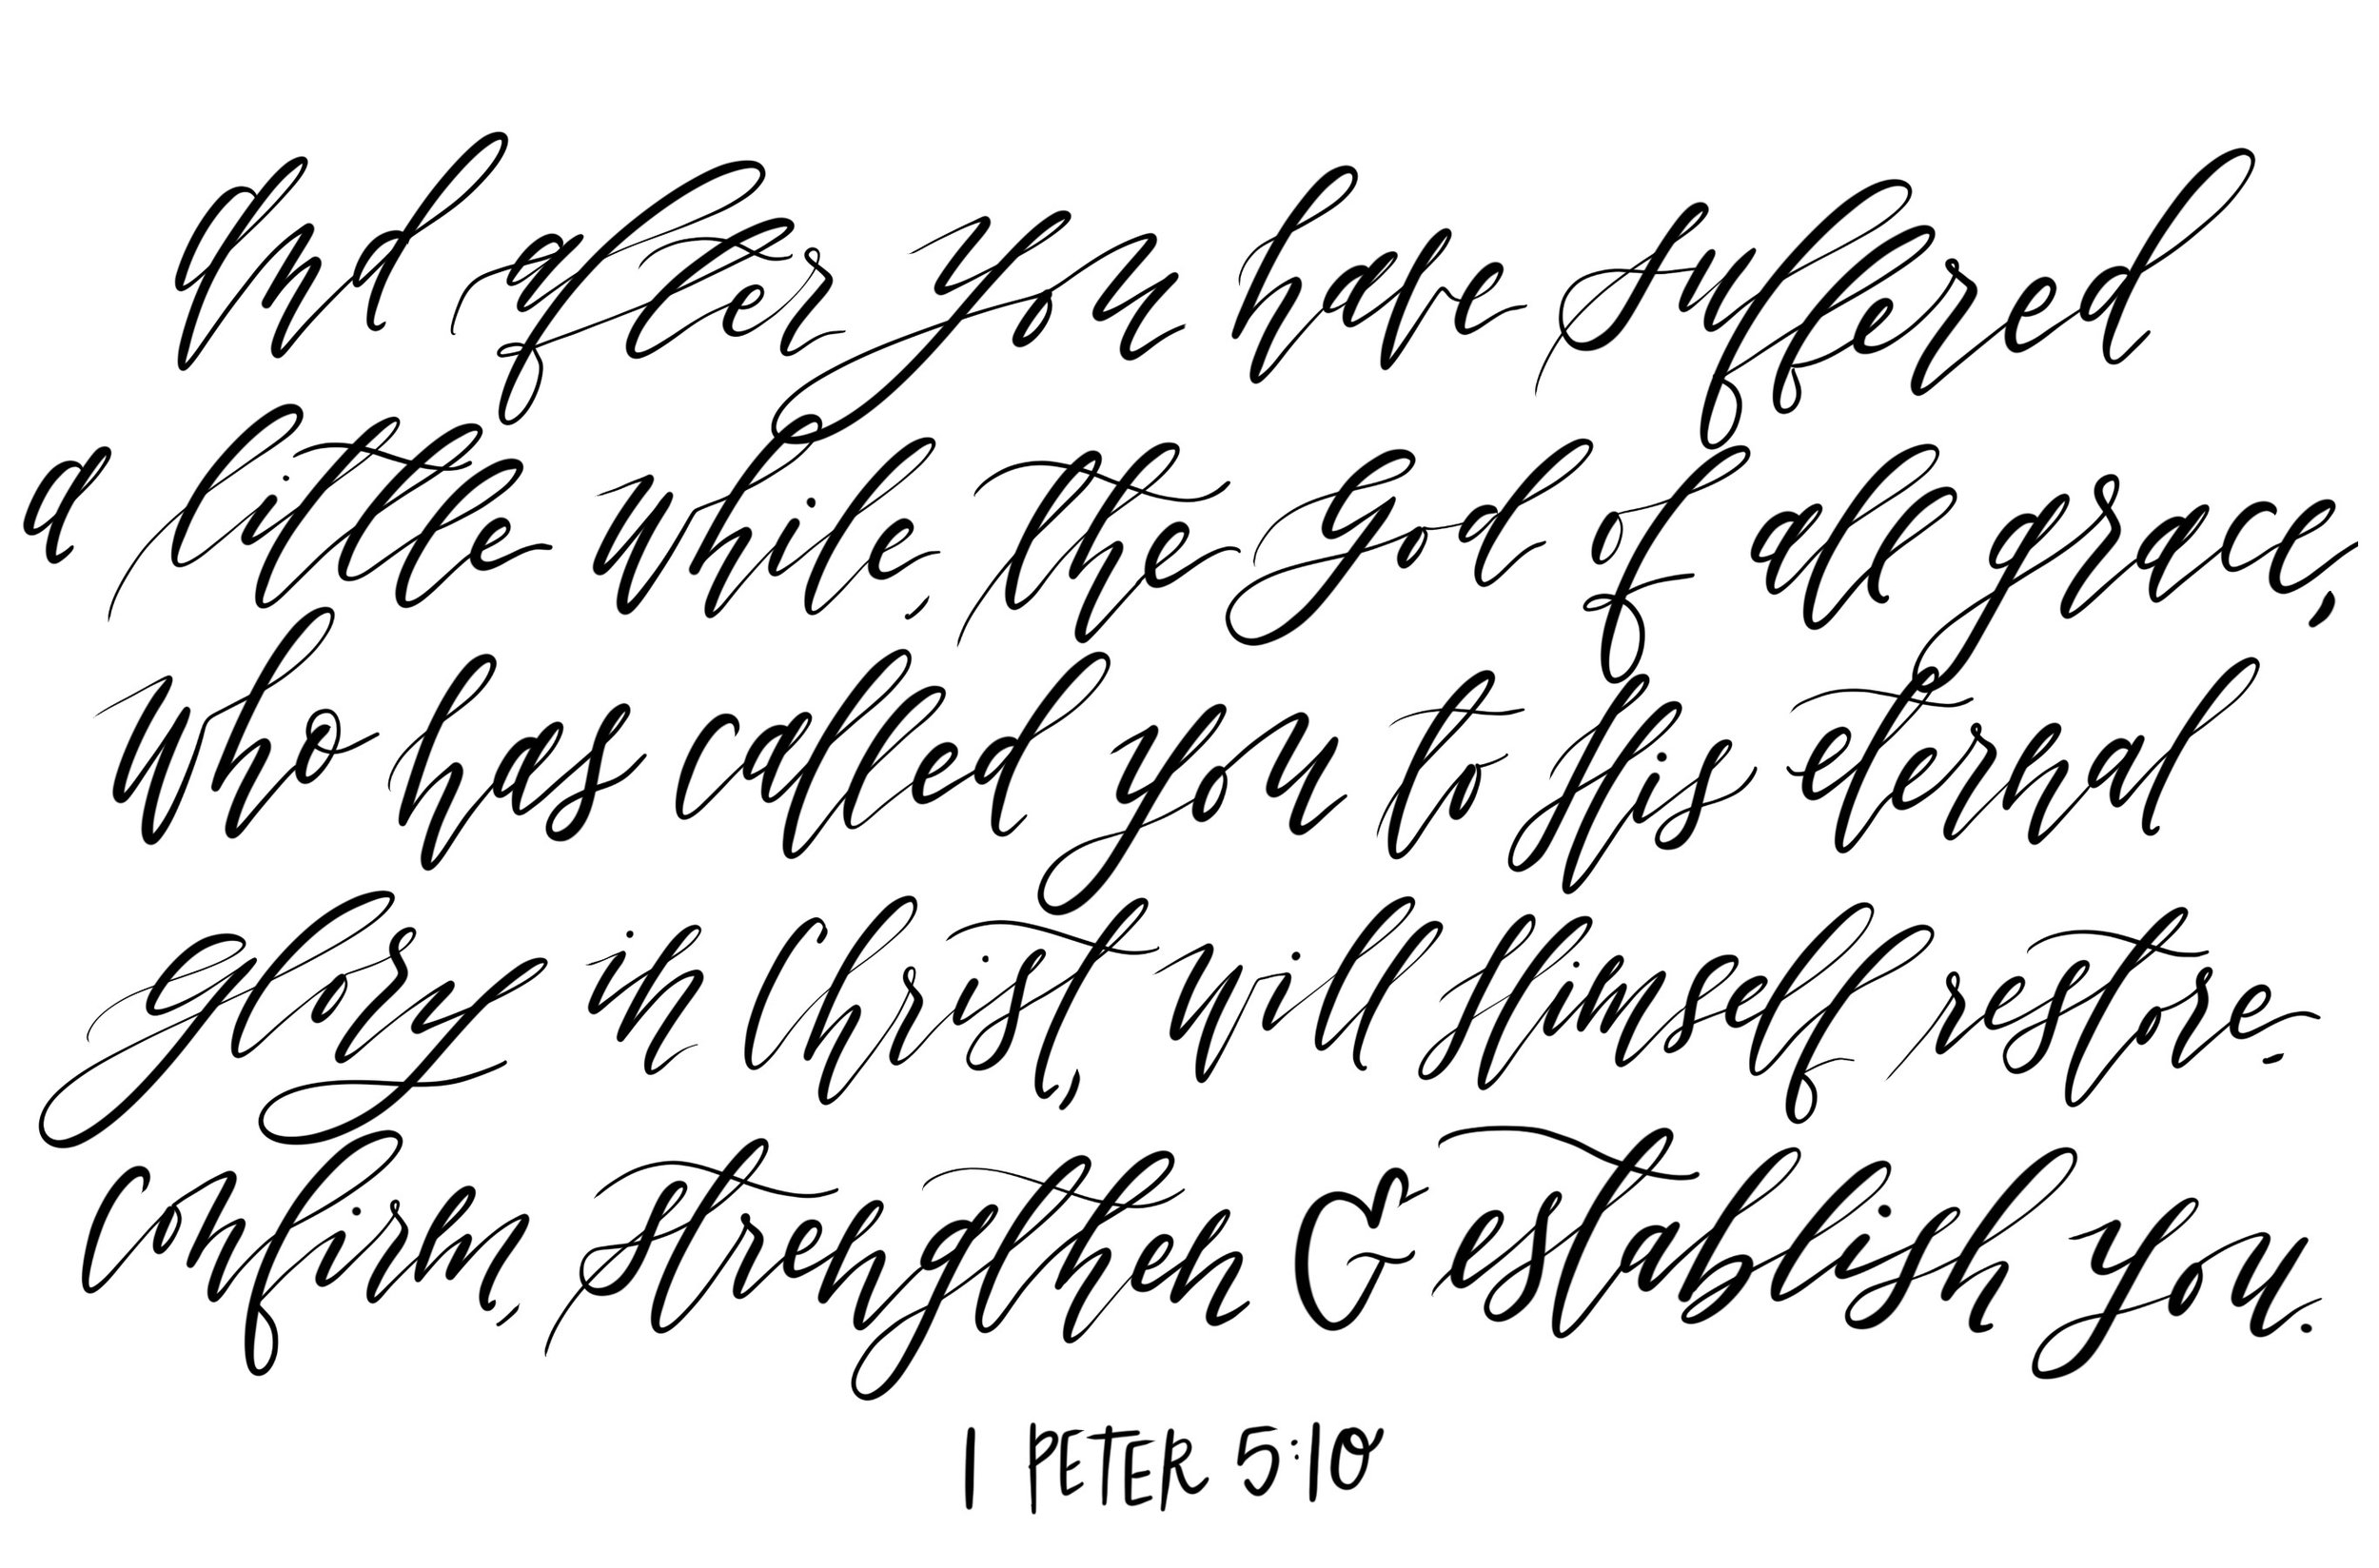 Connar Joy Calligraphy 1 Peter 5:10